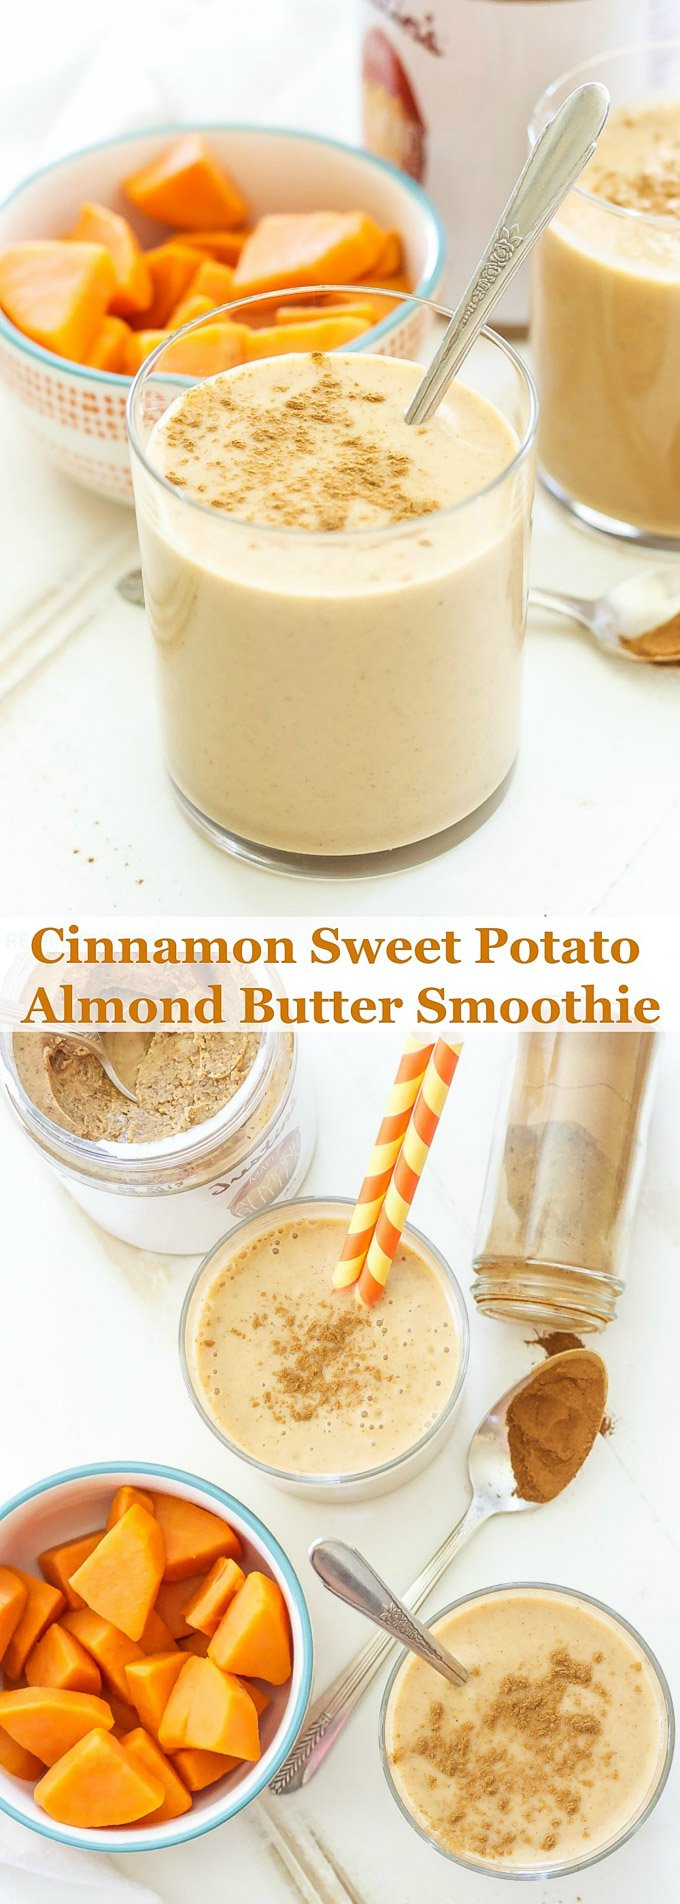 Cinnamon Sweet Potato Almond Butter Smoothie | This smoothie has a delicious pie spiced flavor that's perfect any time of year!